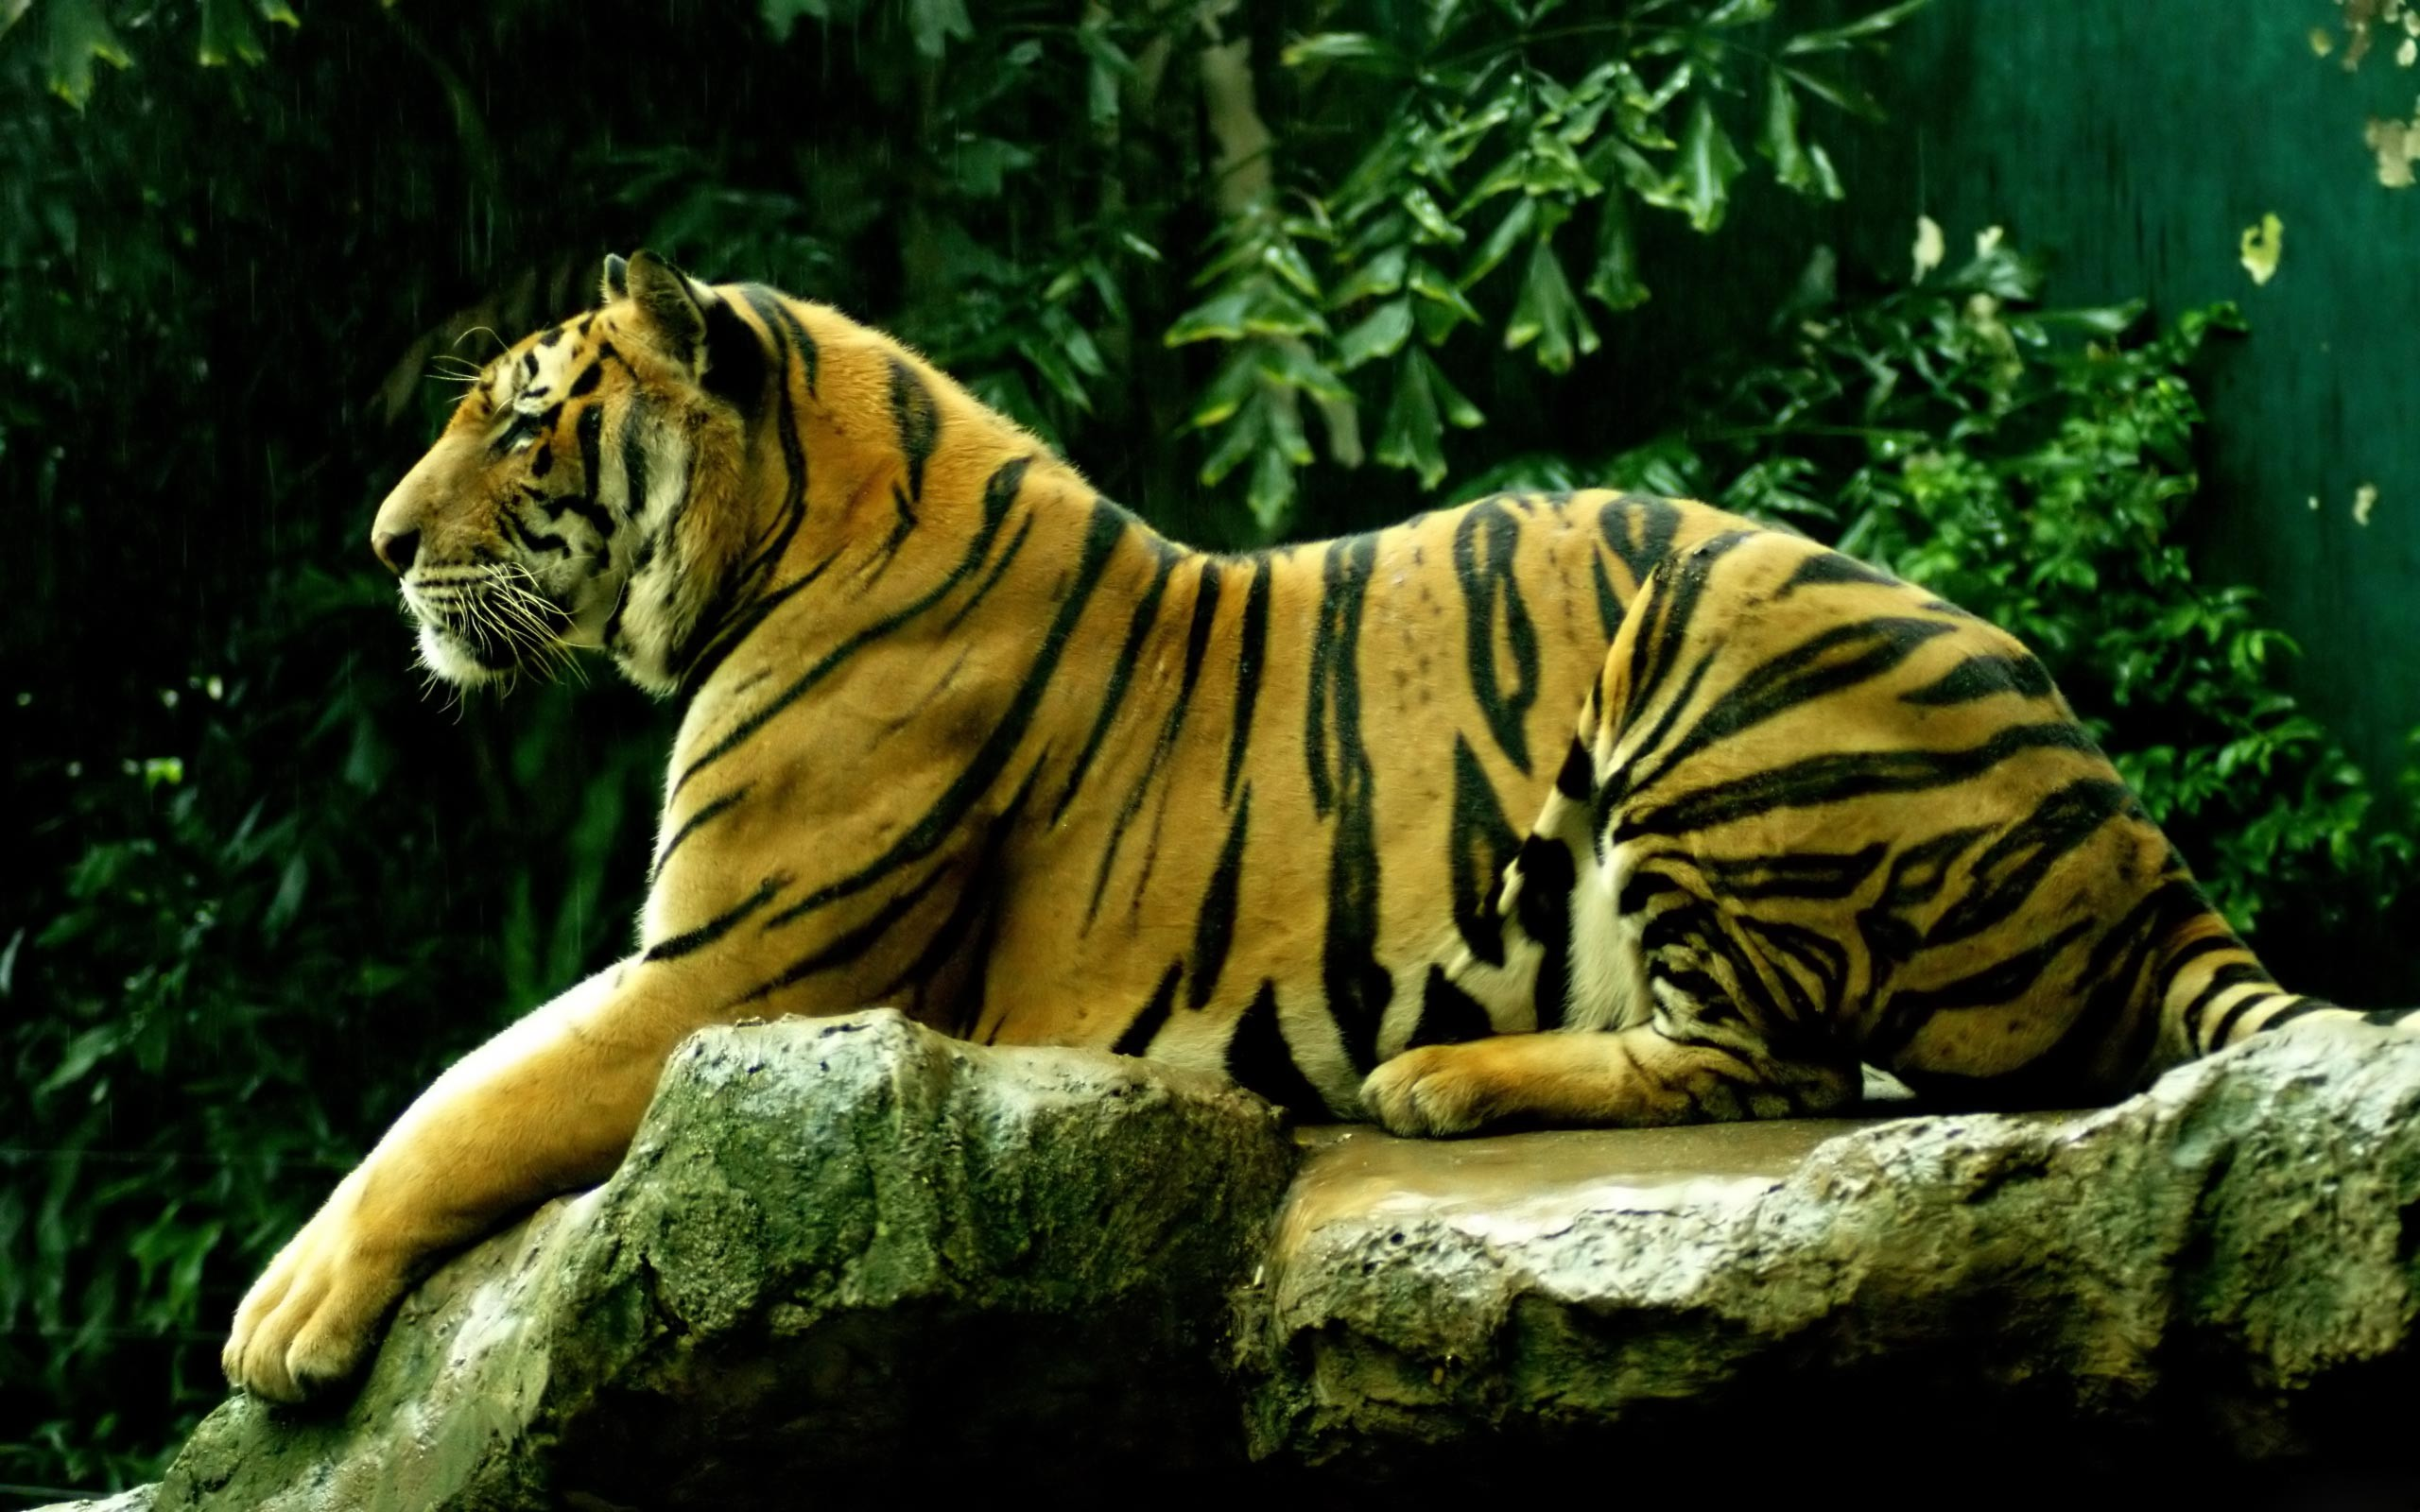 Tiger PC Wallpapers HD Wallpapers Designs of Tigers,Cheetahs,Leopards for  desktop and PC background. Free Tiger wallpapers and Tiger backgrounds for  your …